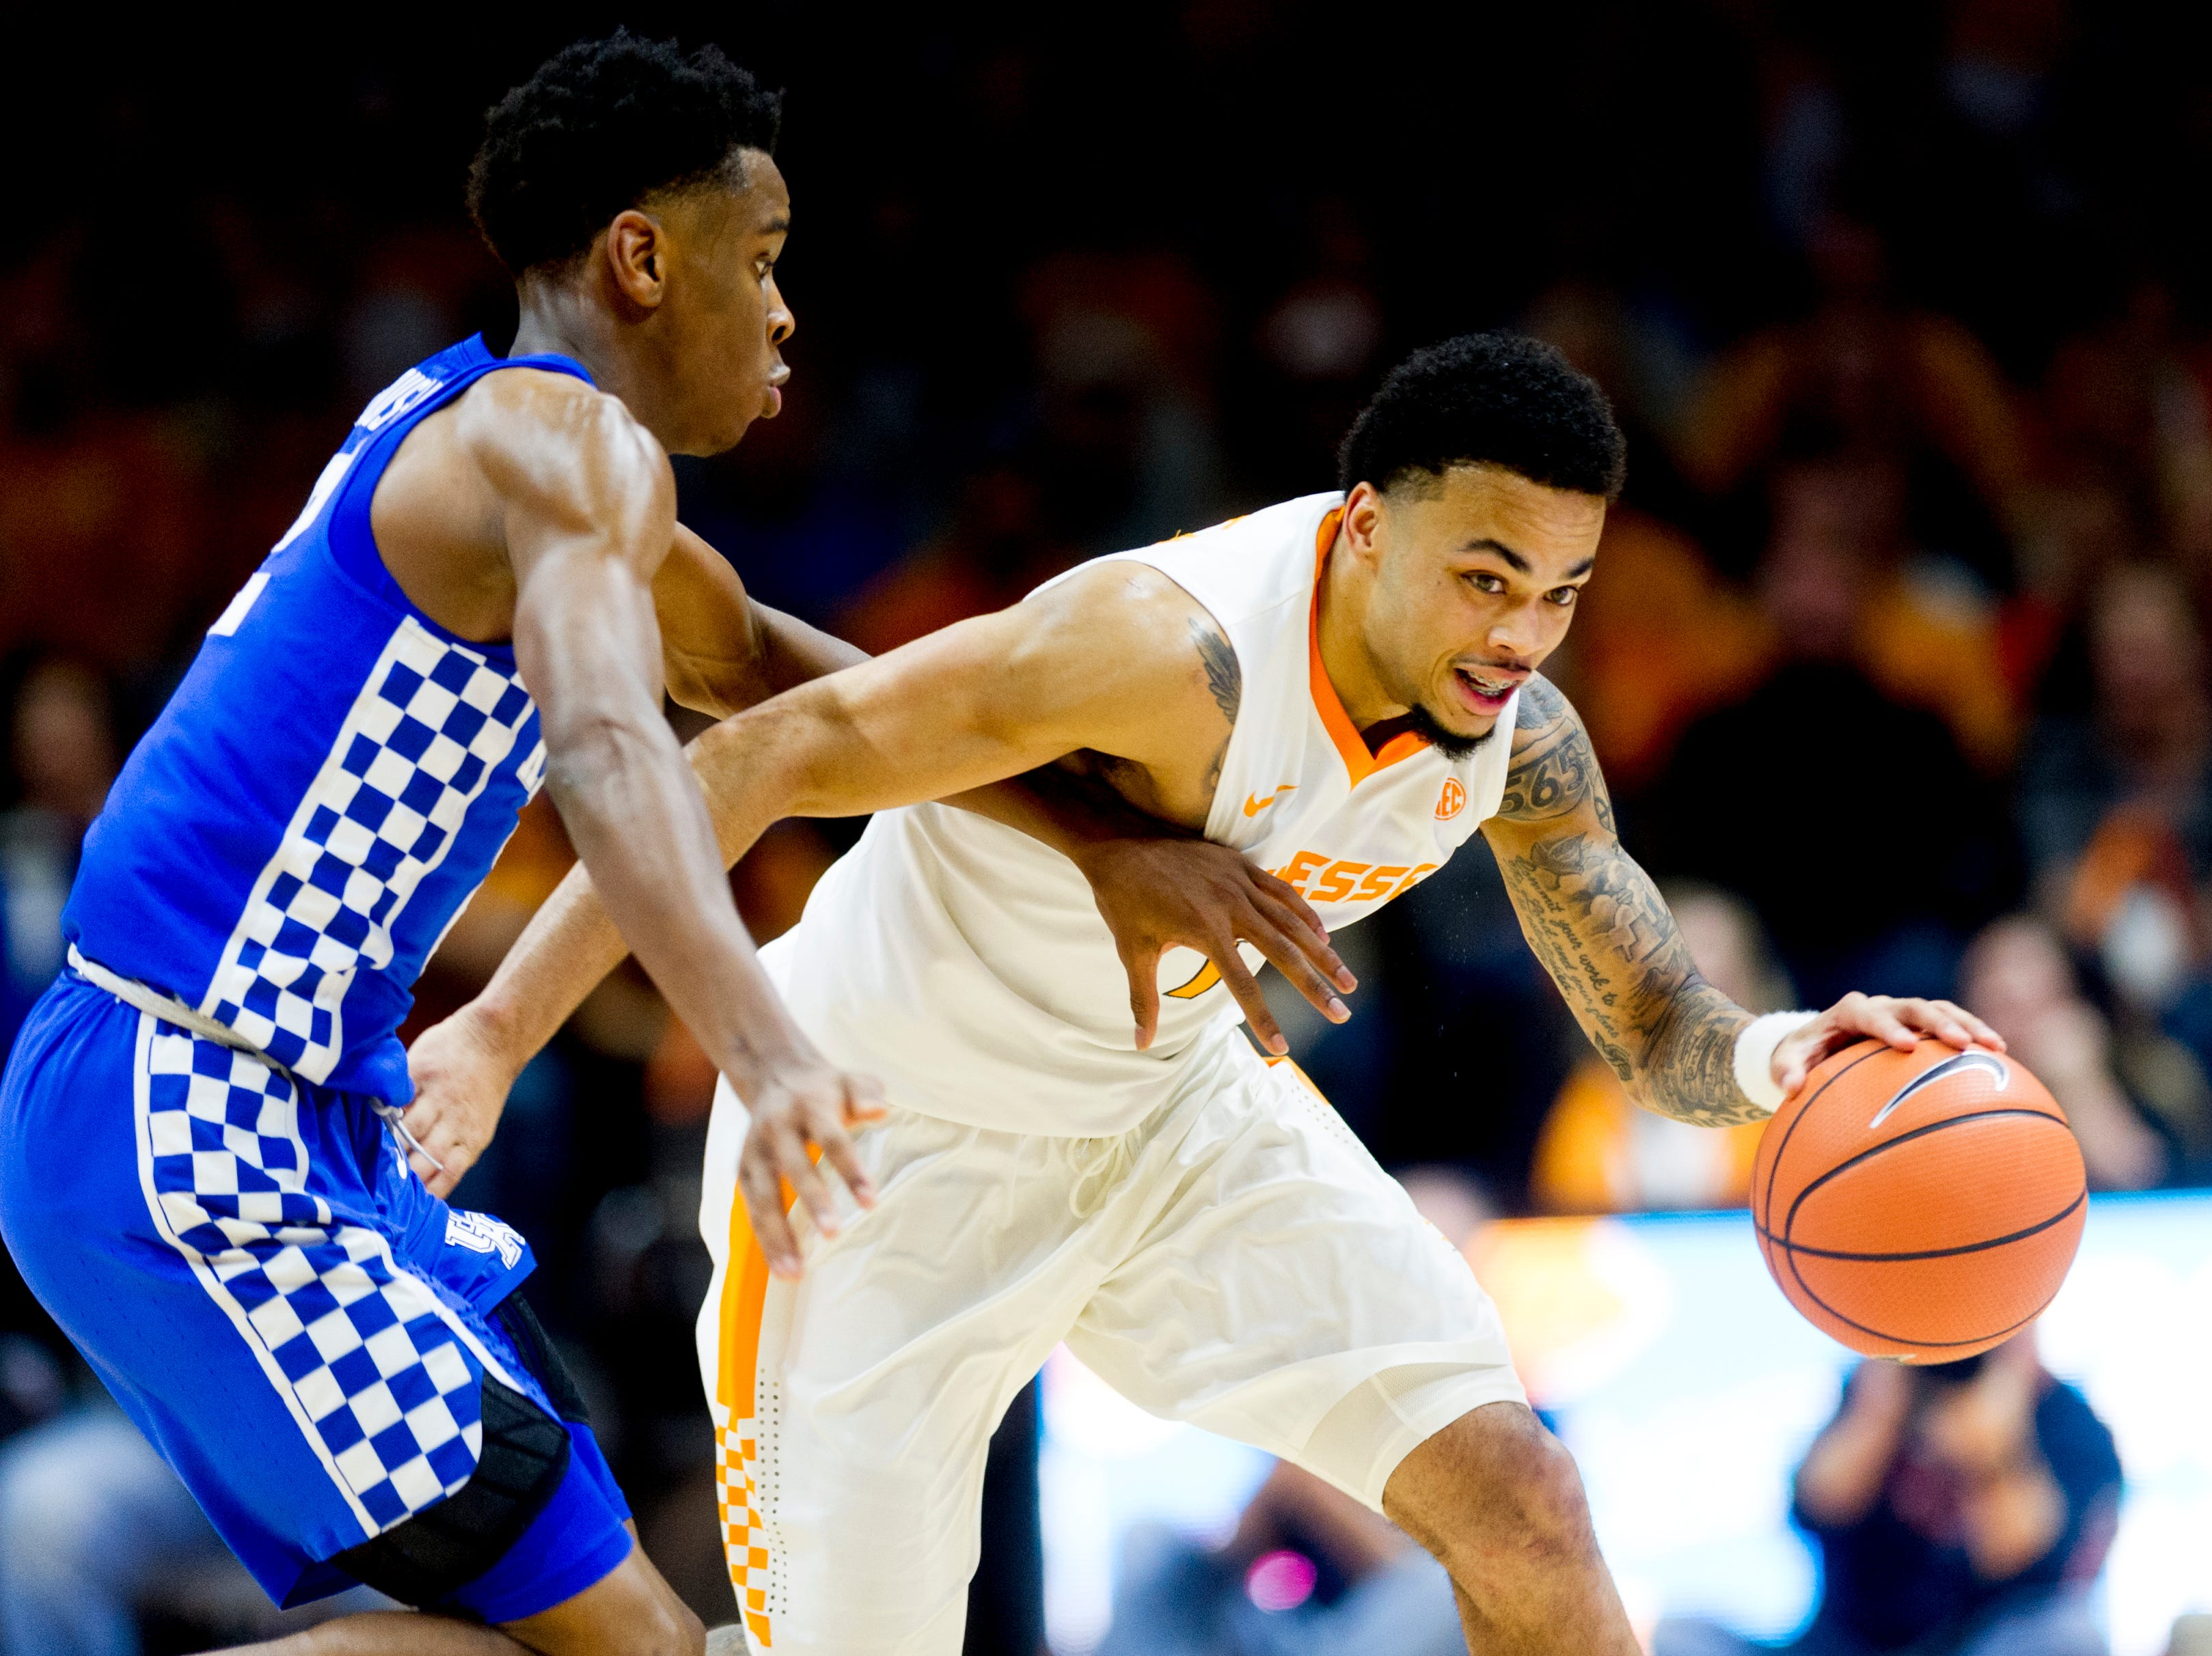 Tennessee guard Lamonte Turner (1) drives the ball past Kentucky guard Shai Gilgeous-Alexander (22) during a game between Tennessee and Kentucky at Thompson-Boling Arena in Knoxville, Tennessee on Saturday, January 6, 2018.